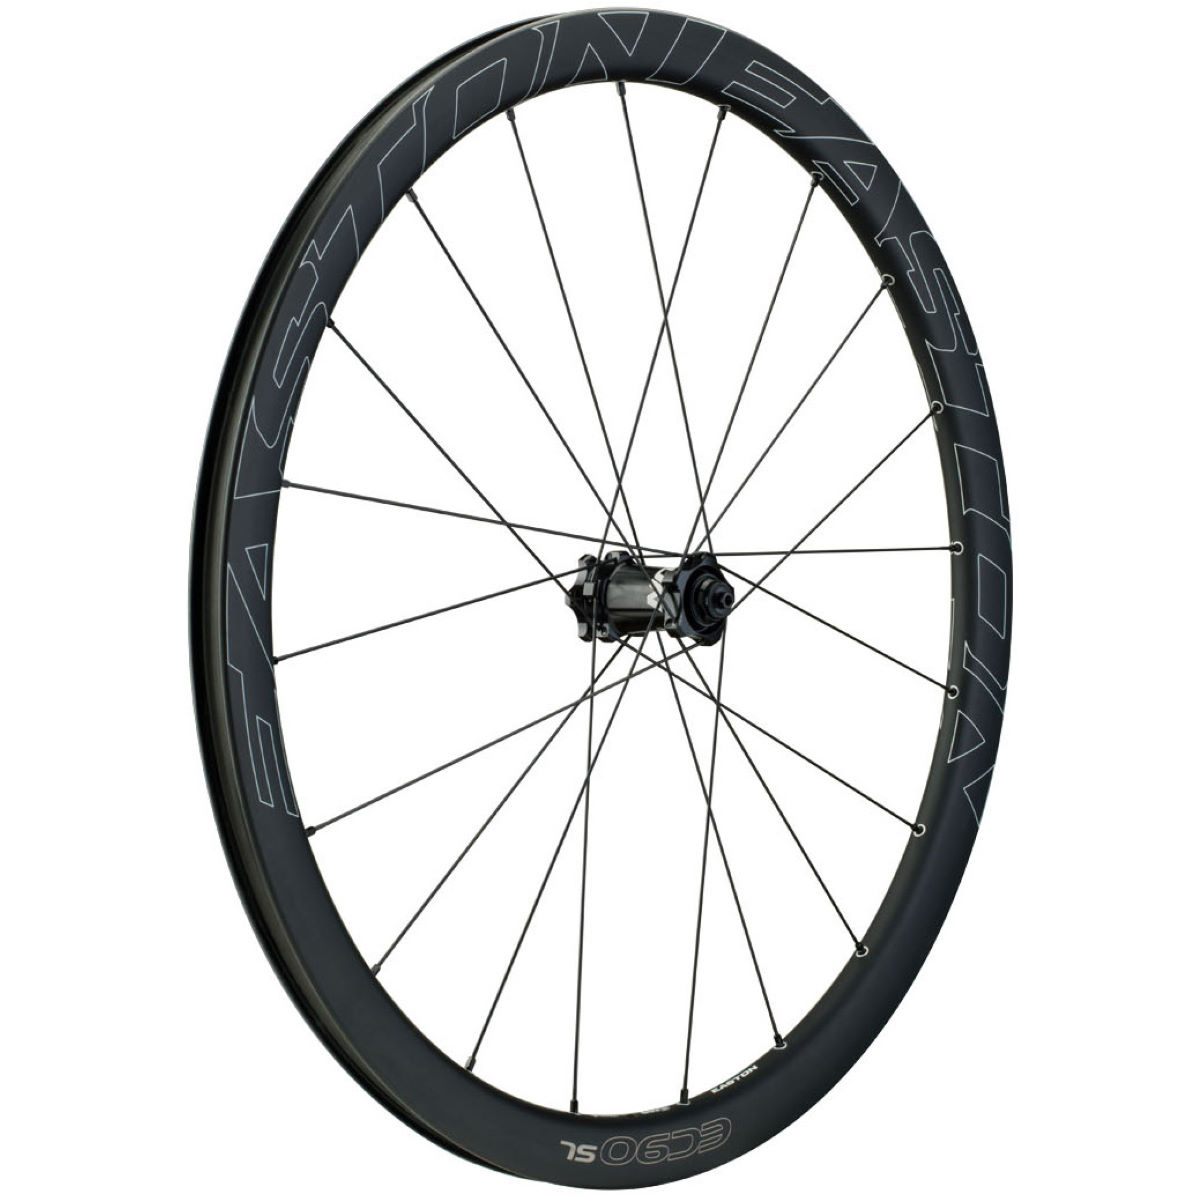 Easton EC90 SL Disc Front Road Wheel - Tubular - Ruedas delanteras